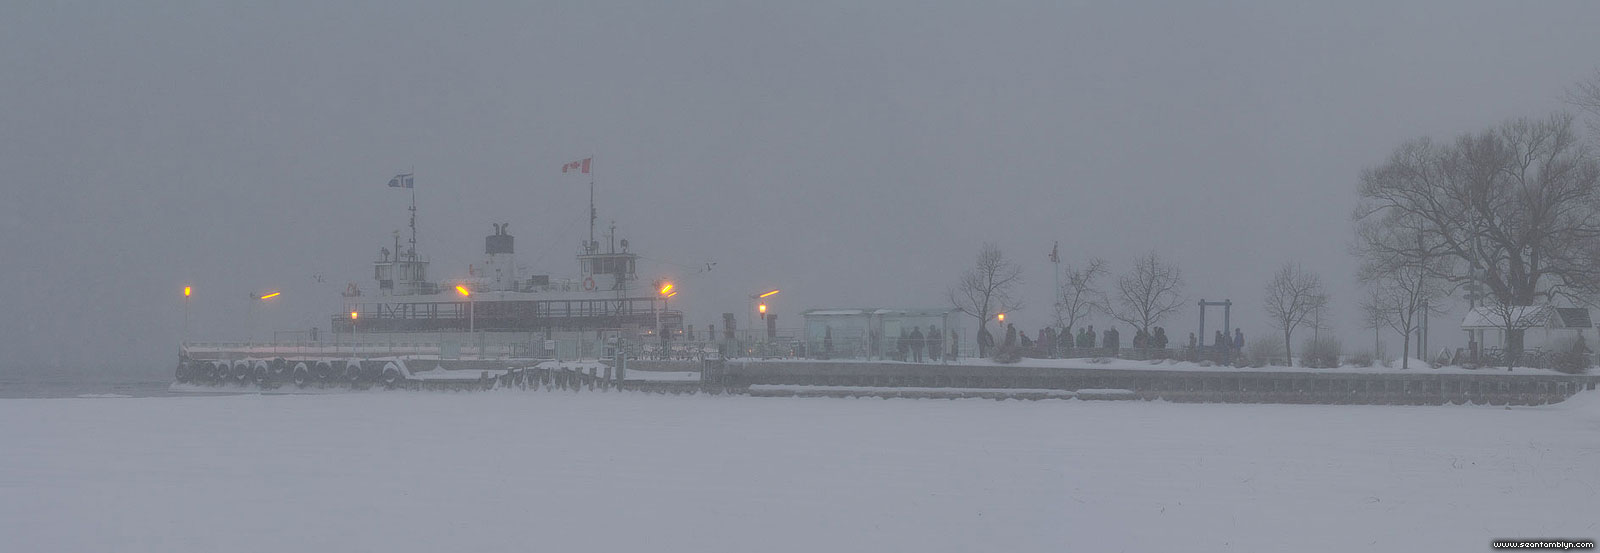 Ferry William Inglis in snow and ice, Ward's Island, Toronto Islands